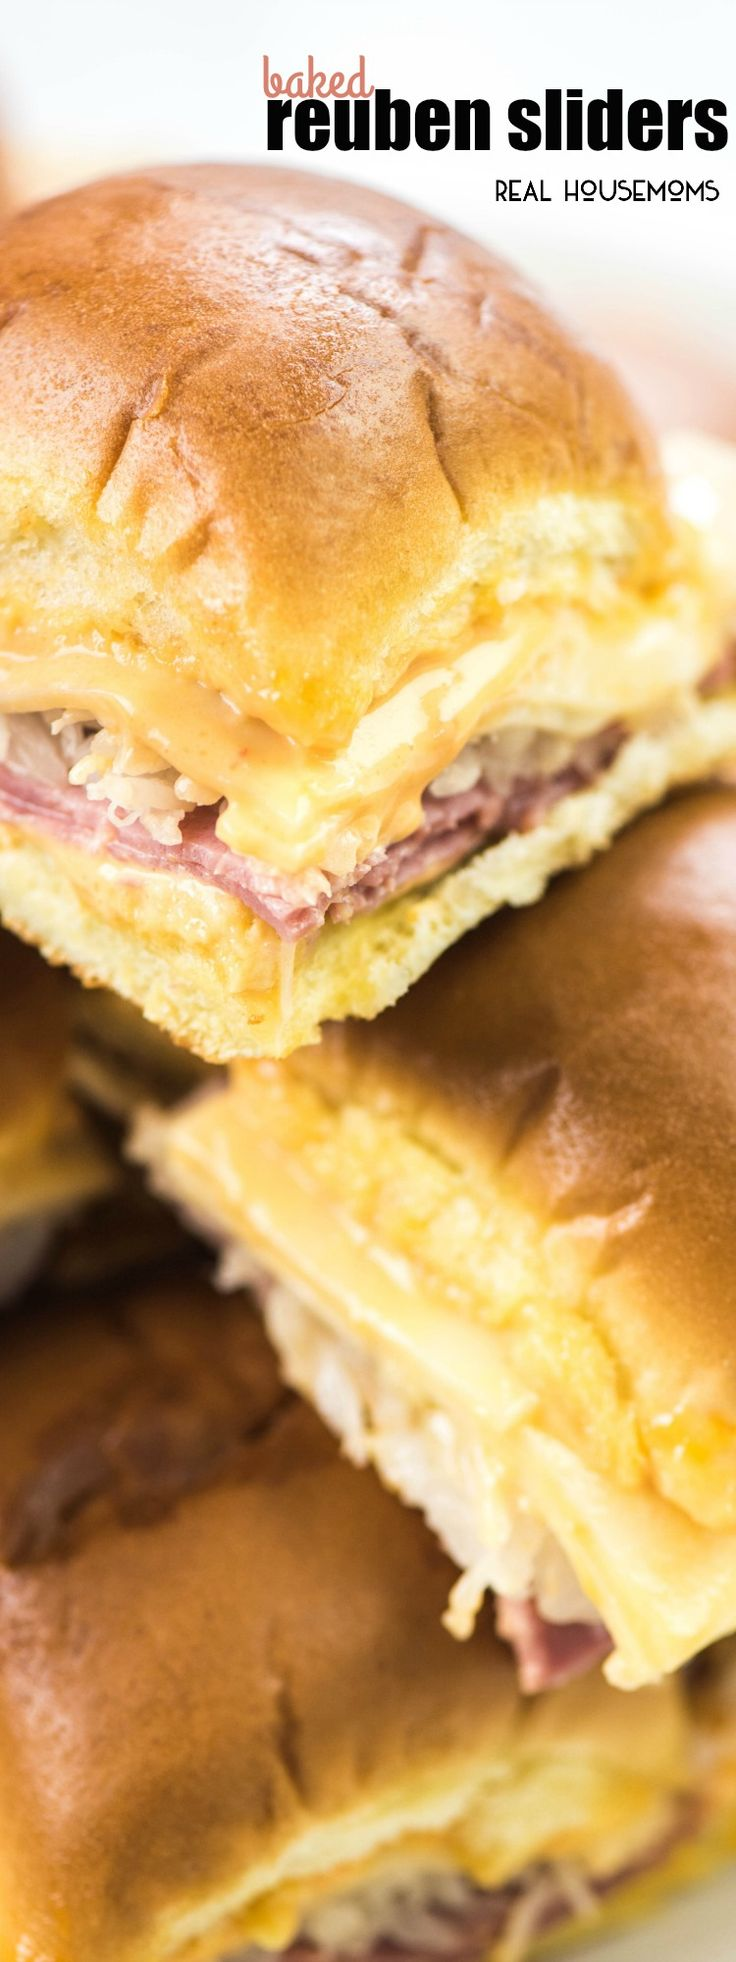 Baked Reuben Sliders are so simple to make and perfect St. Patrick's Day party food! You could make them for any party or just a warm lunch! They always go fast!